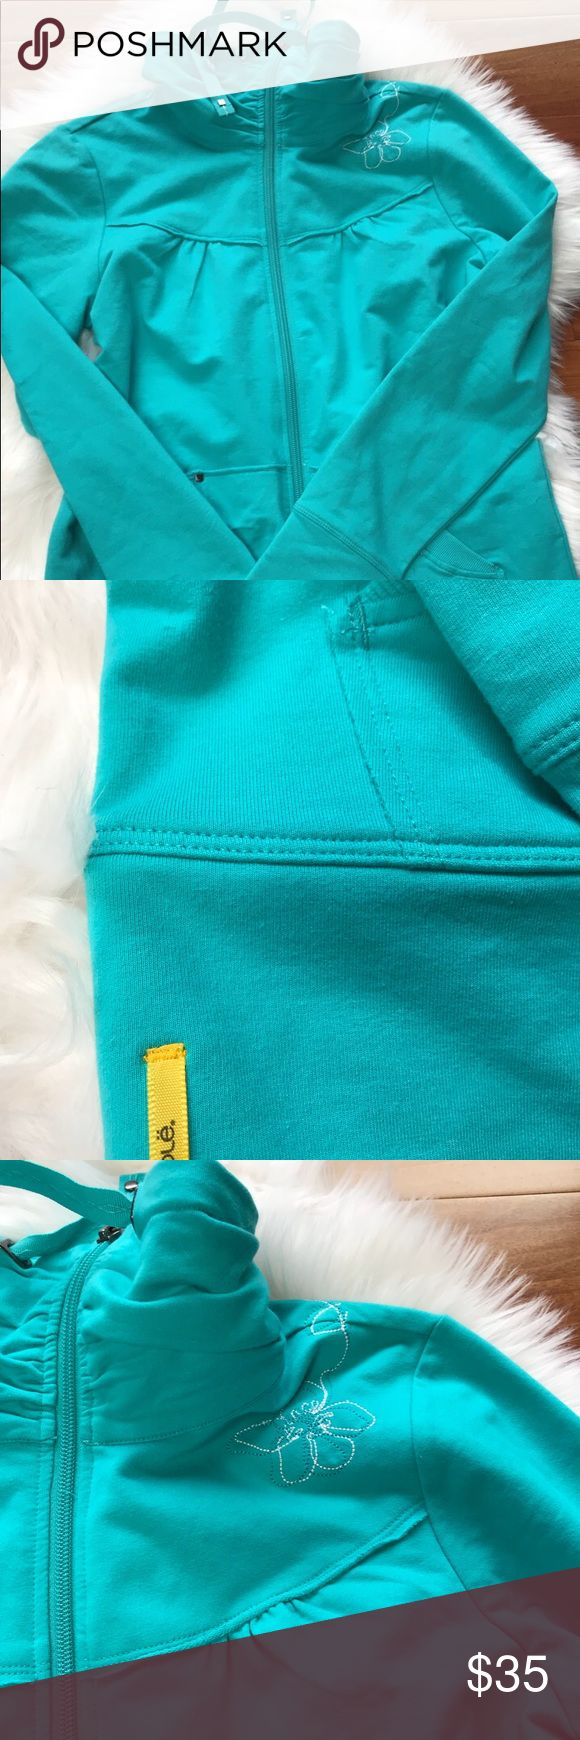 Lole Hoodie Jacket Embroidered NWOT Medium Adorable and soft cotton hoodie. Never worn! No flaws! Lole Jackets & Coats